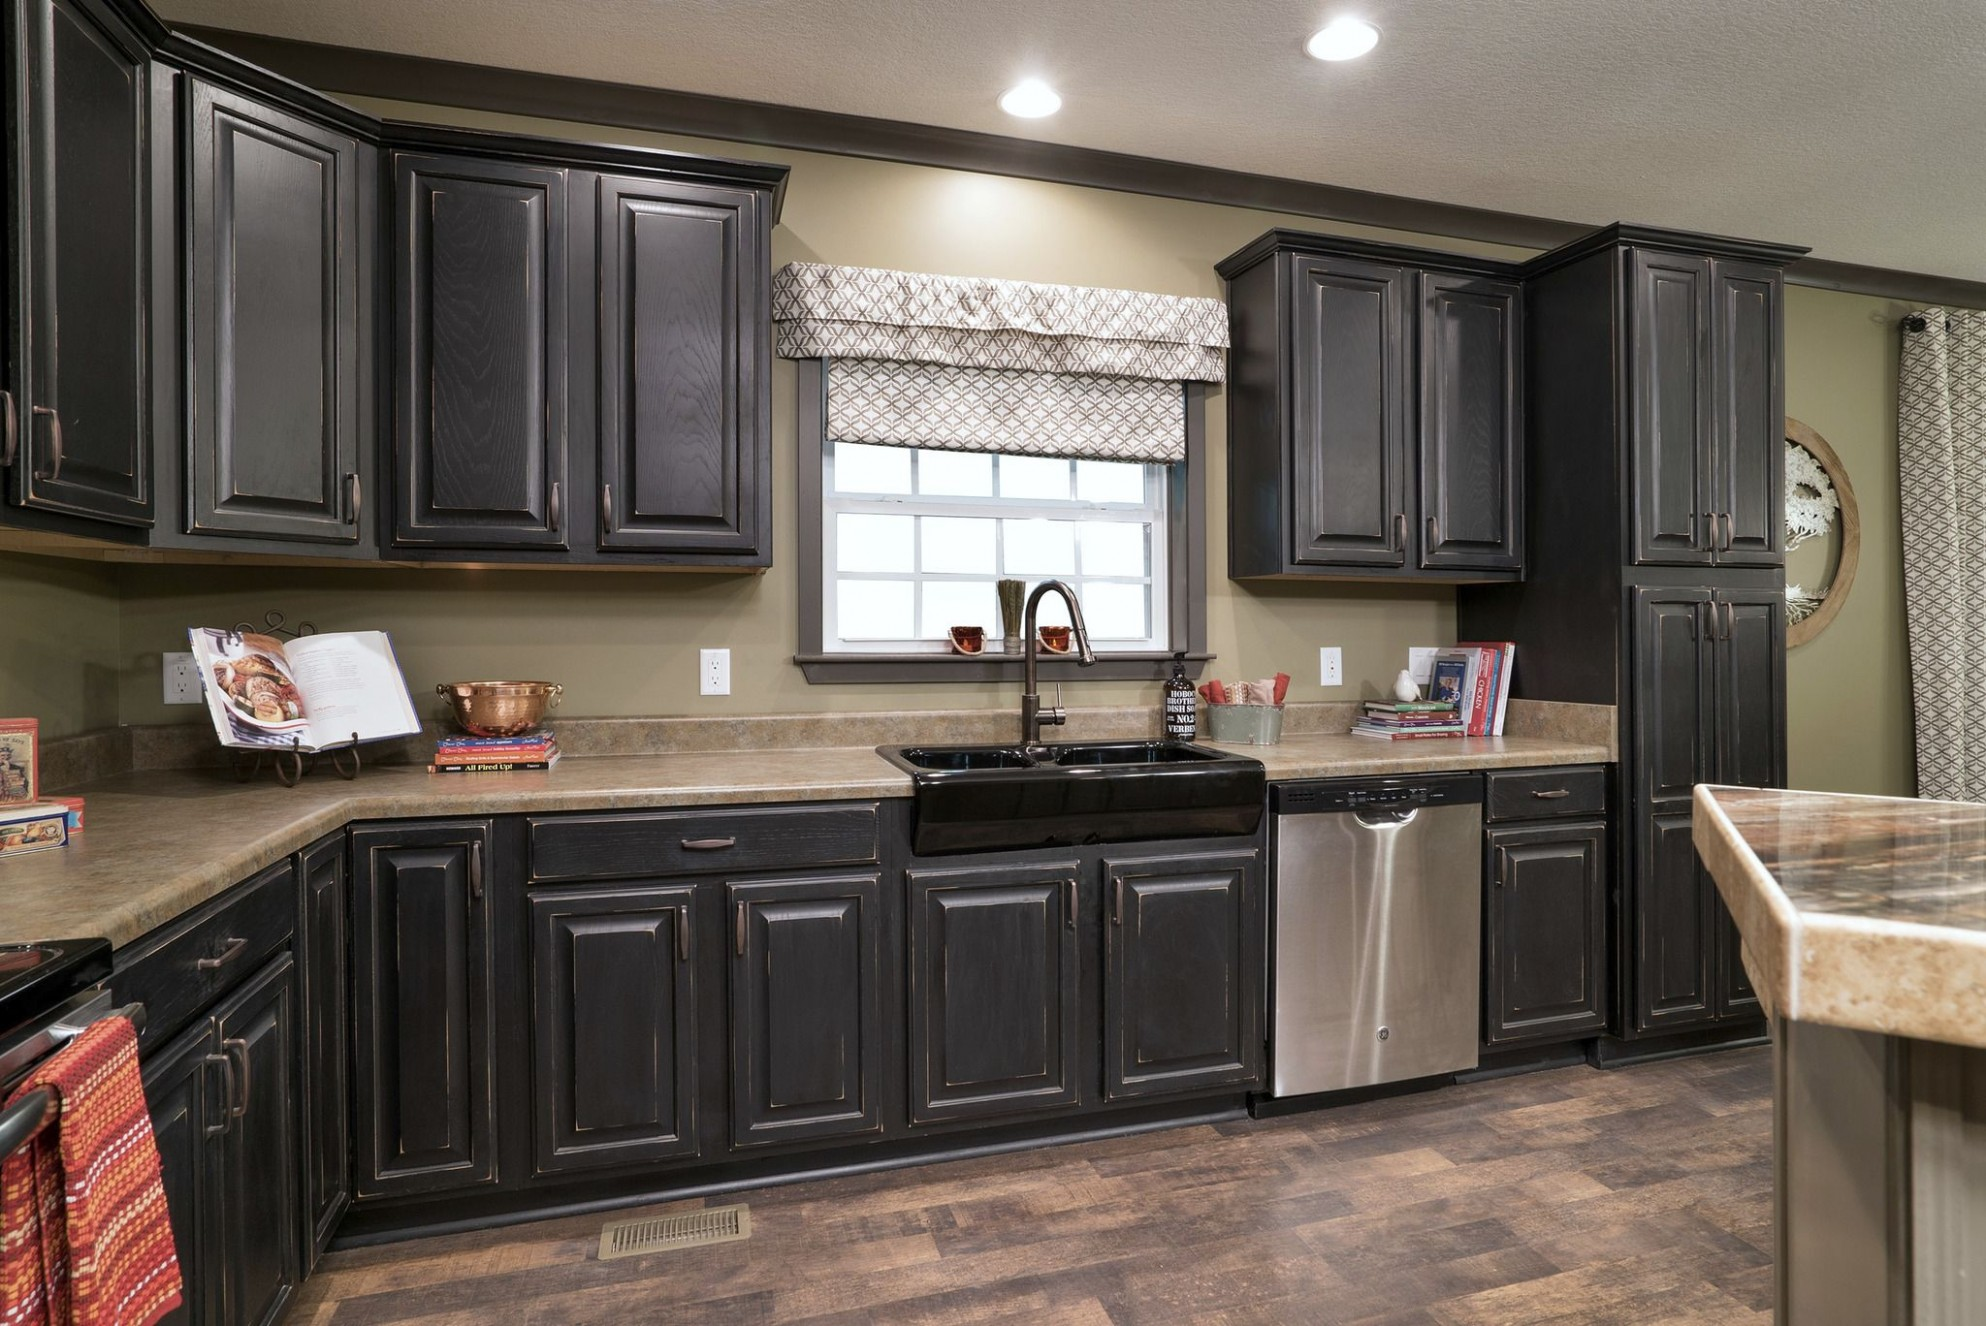 Raised Panel Black Cabinets by Kith are offered by Franklin Homes  - Franklin Kitchen Cabinets